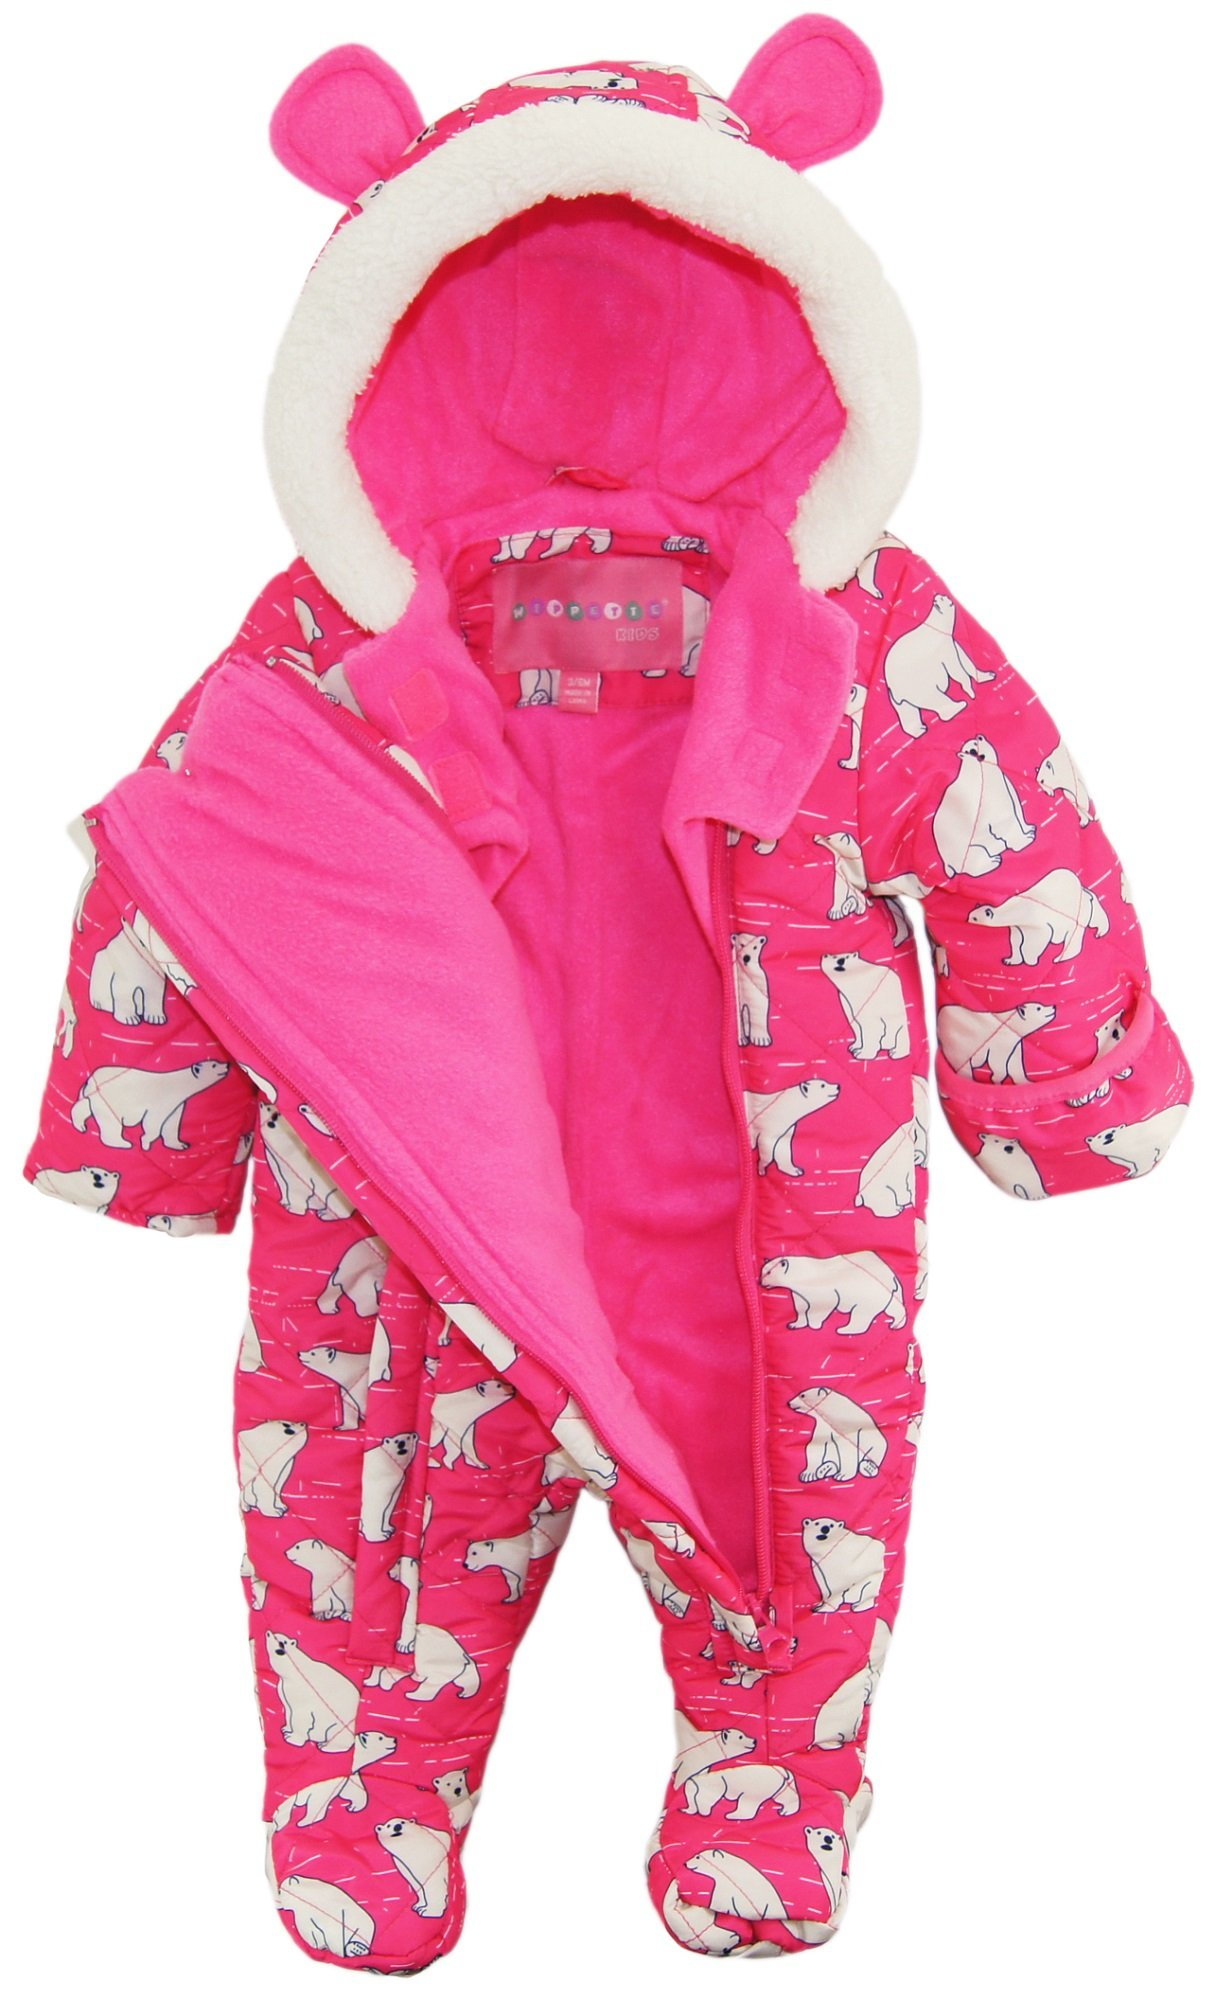 Wippette Baby Girls Newborn Polar Bear Microfiber Quilted Snowsuit Snow Pram, Pink, 3-6 Months by Wippette (Image #2)